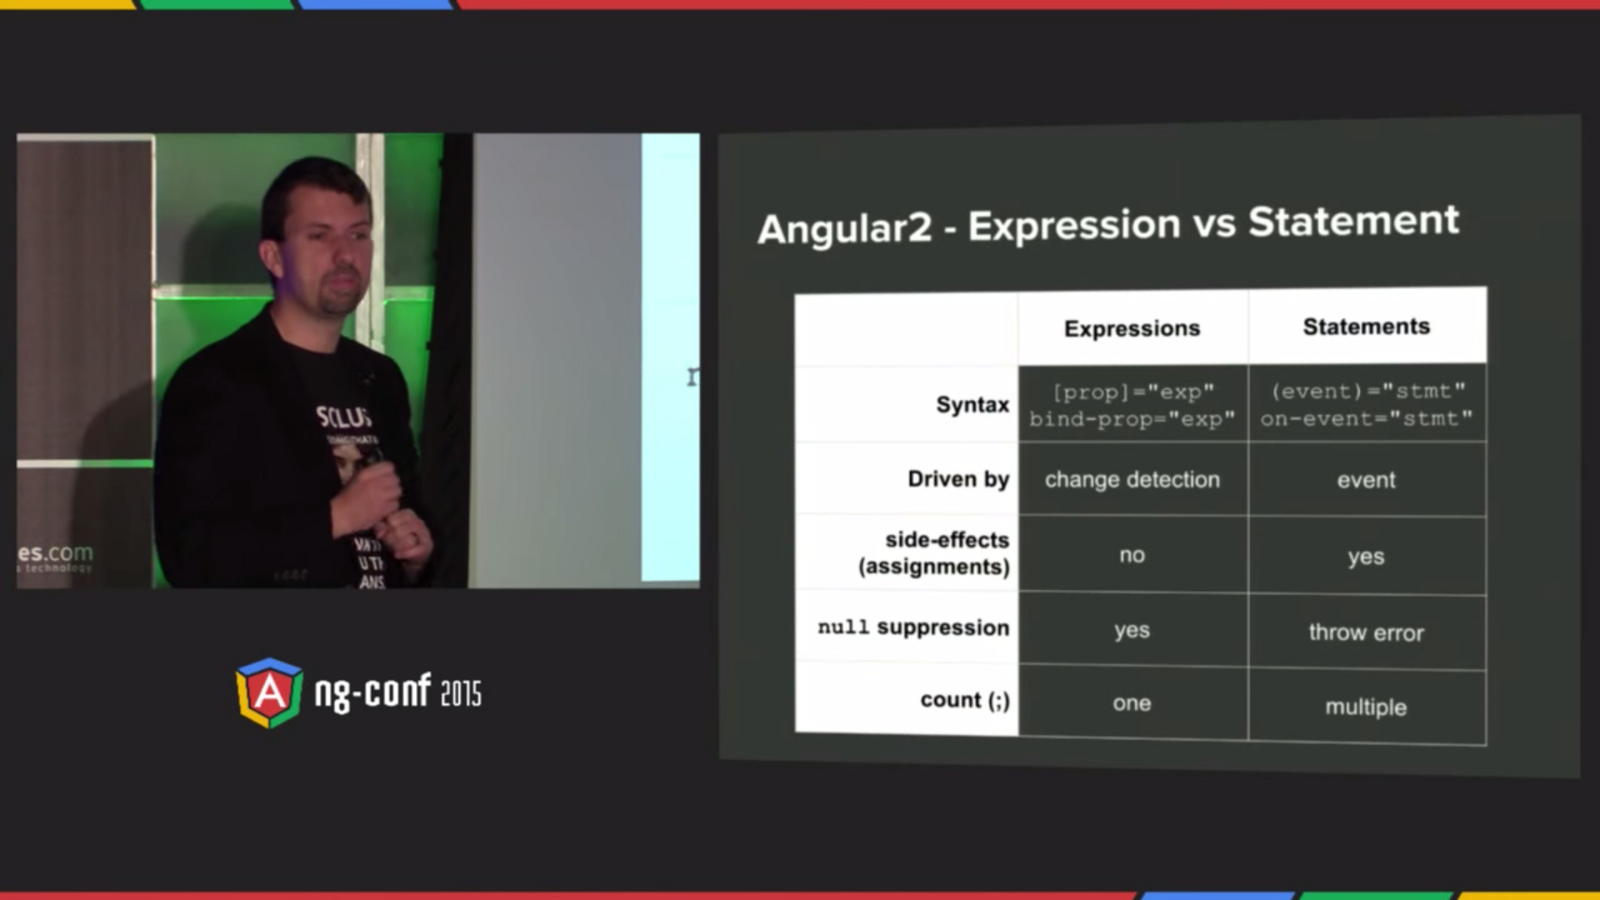 Thoughts on Angular 2 after ng-conf 2015  (and some whisky)